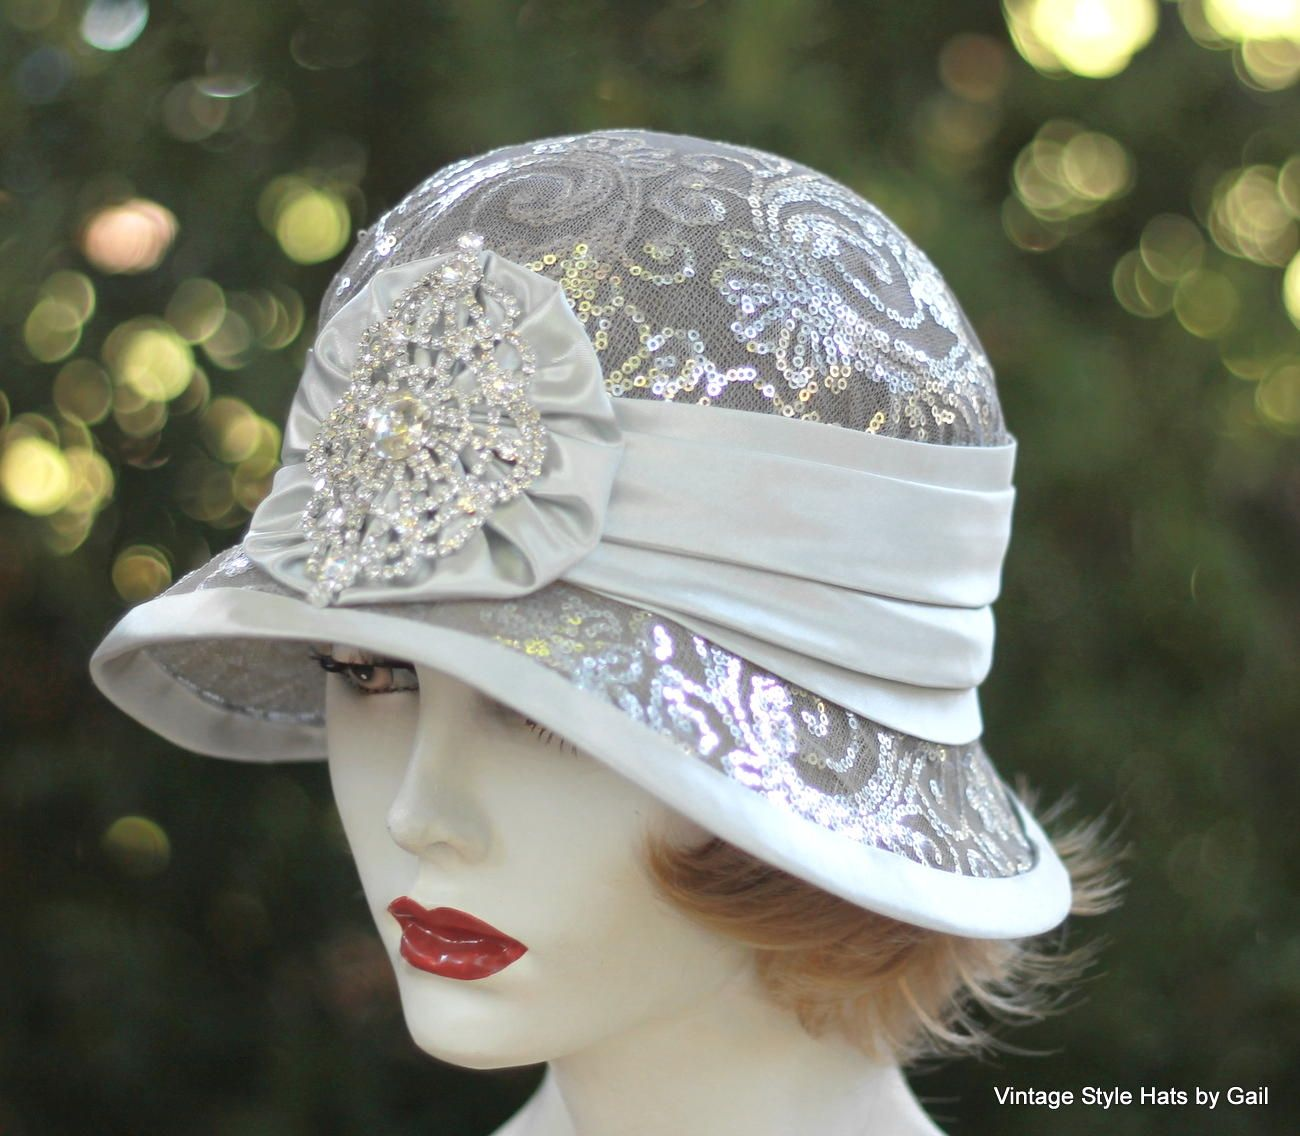 e581eb4ea60 Custom Made 1920 S Vintage Style Cloche Wedding Hat For Mother Of The  Bride